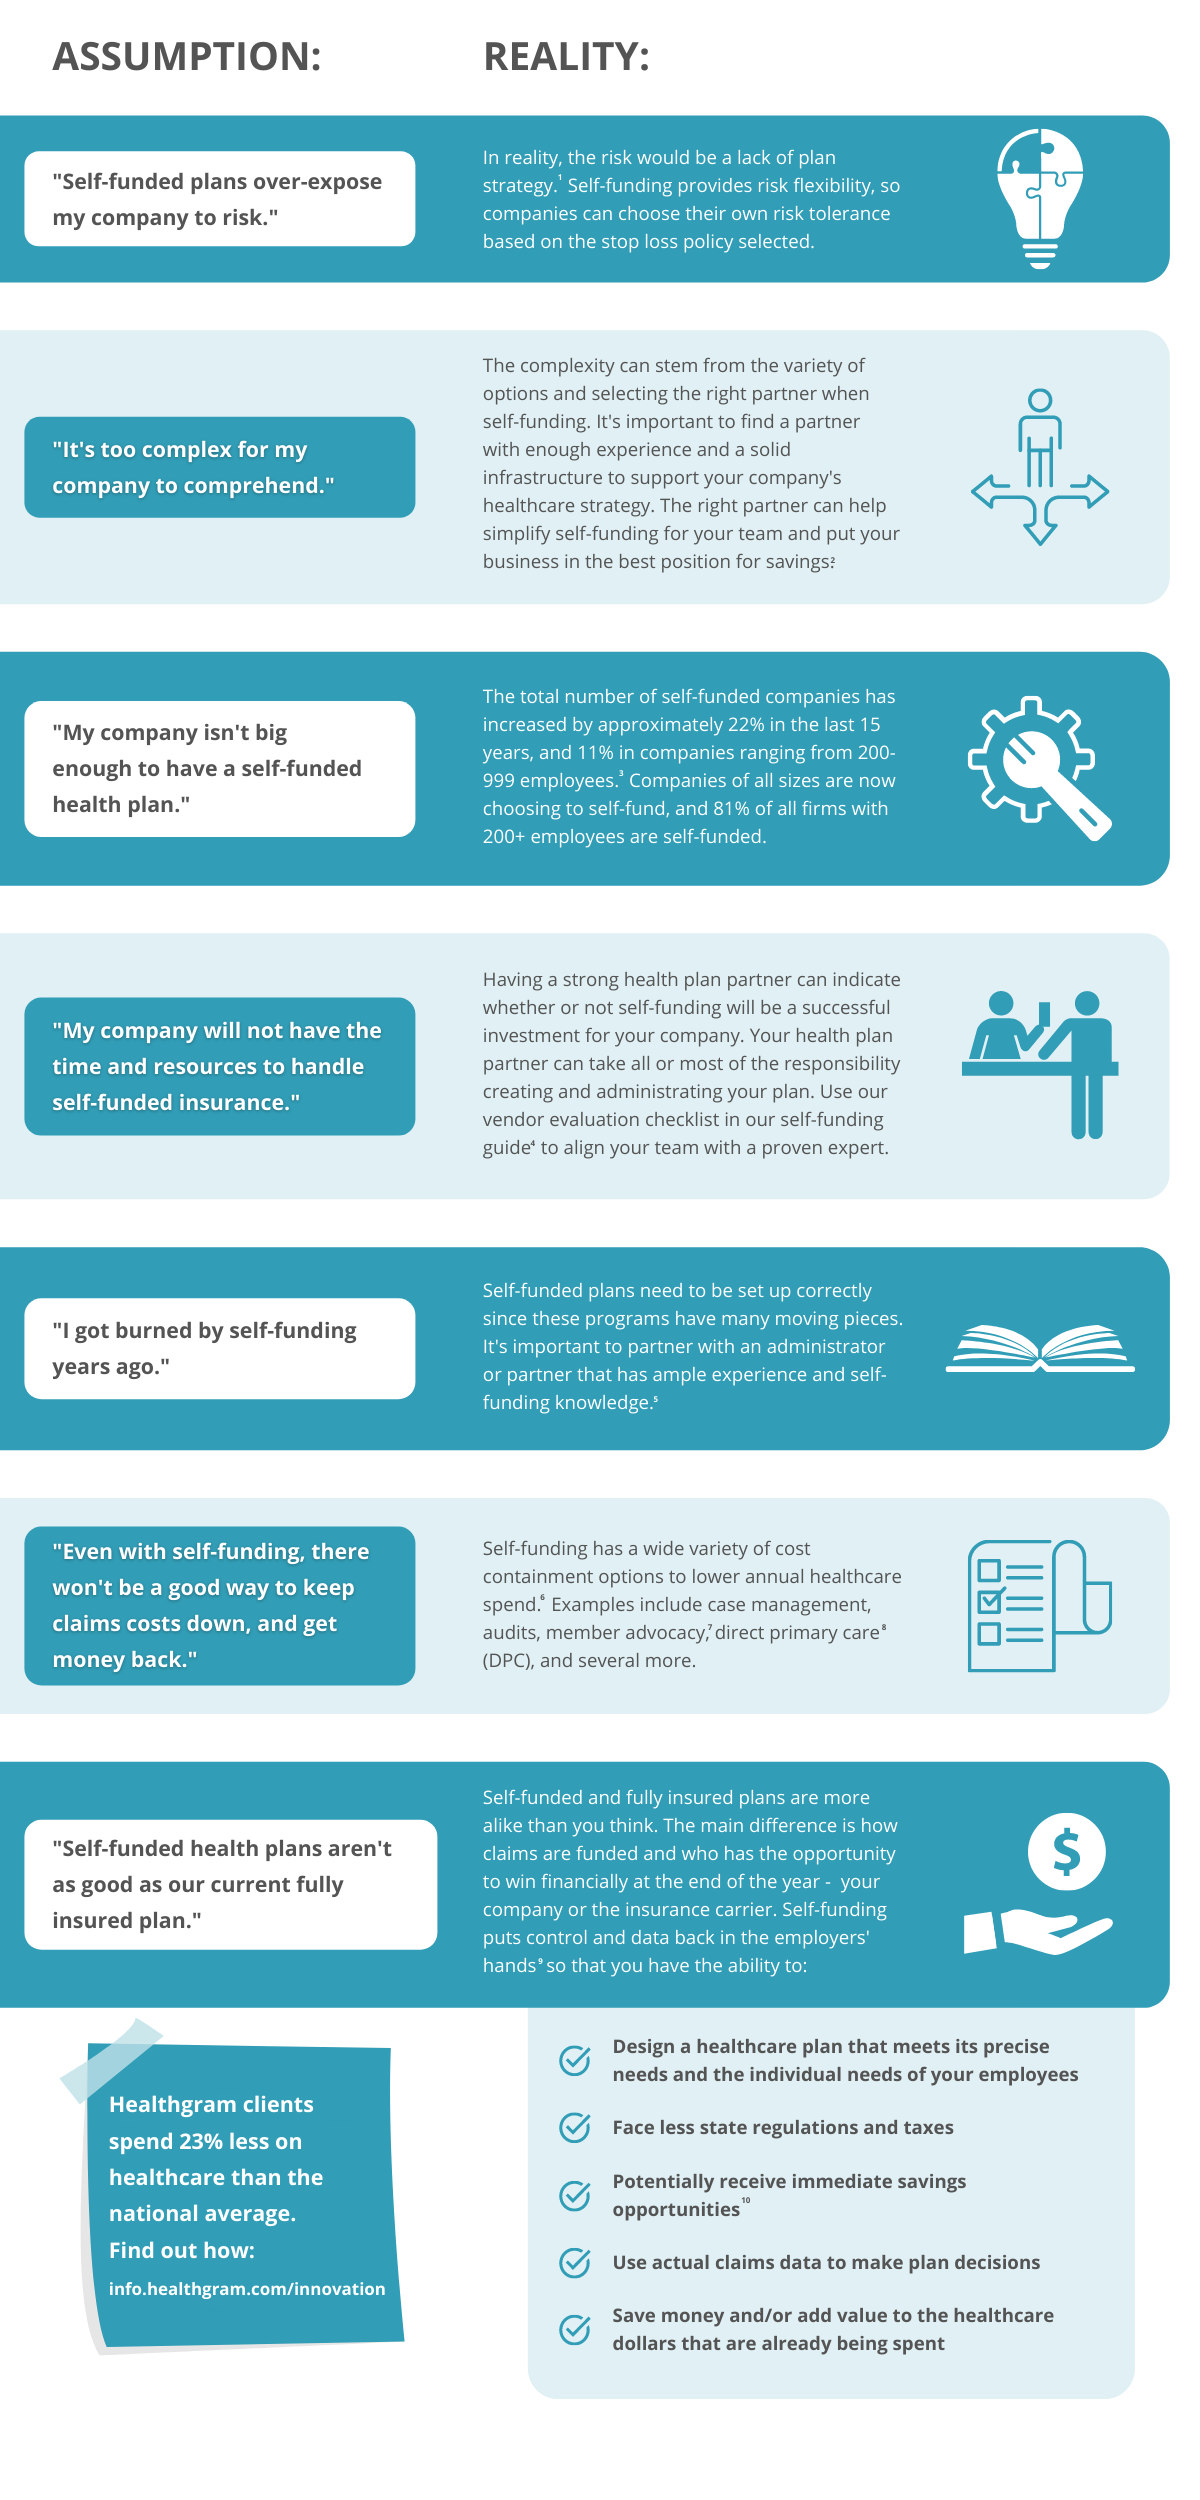 Infographic: The Most Common Assumptions About Self-Funding